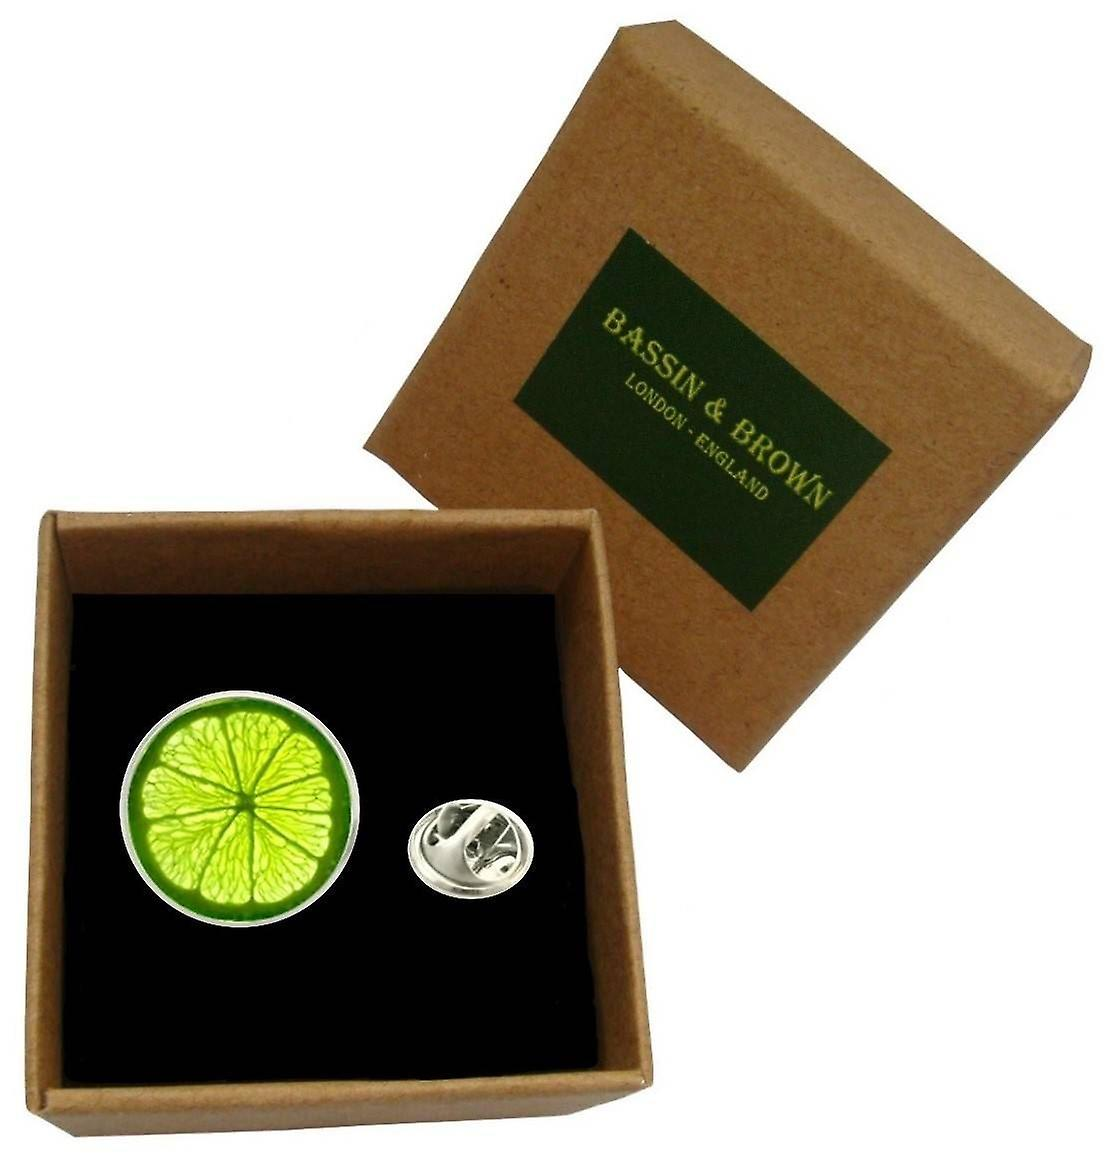 Bassin and Brown Lime Jacket Lapel Pin - Lime Green